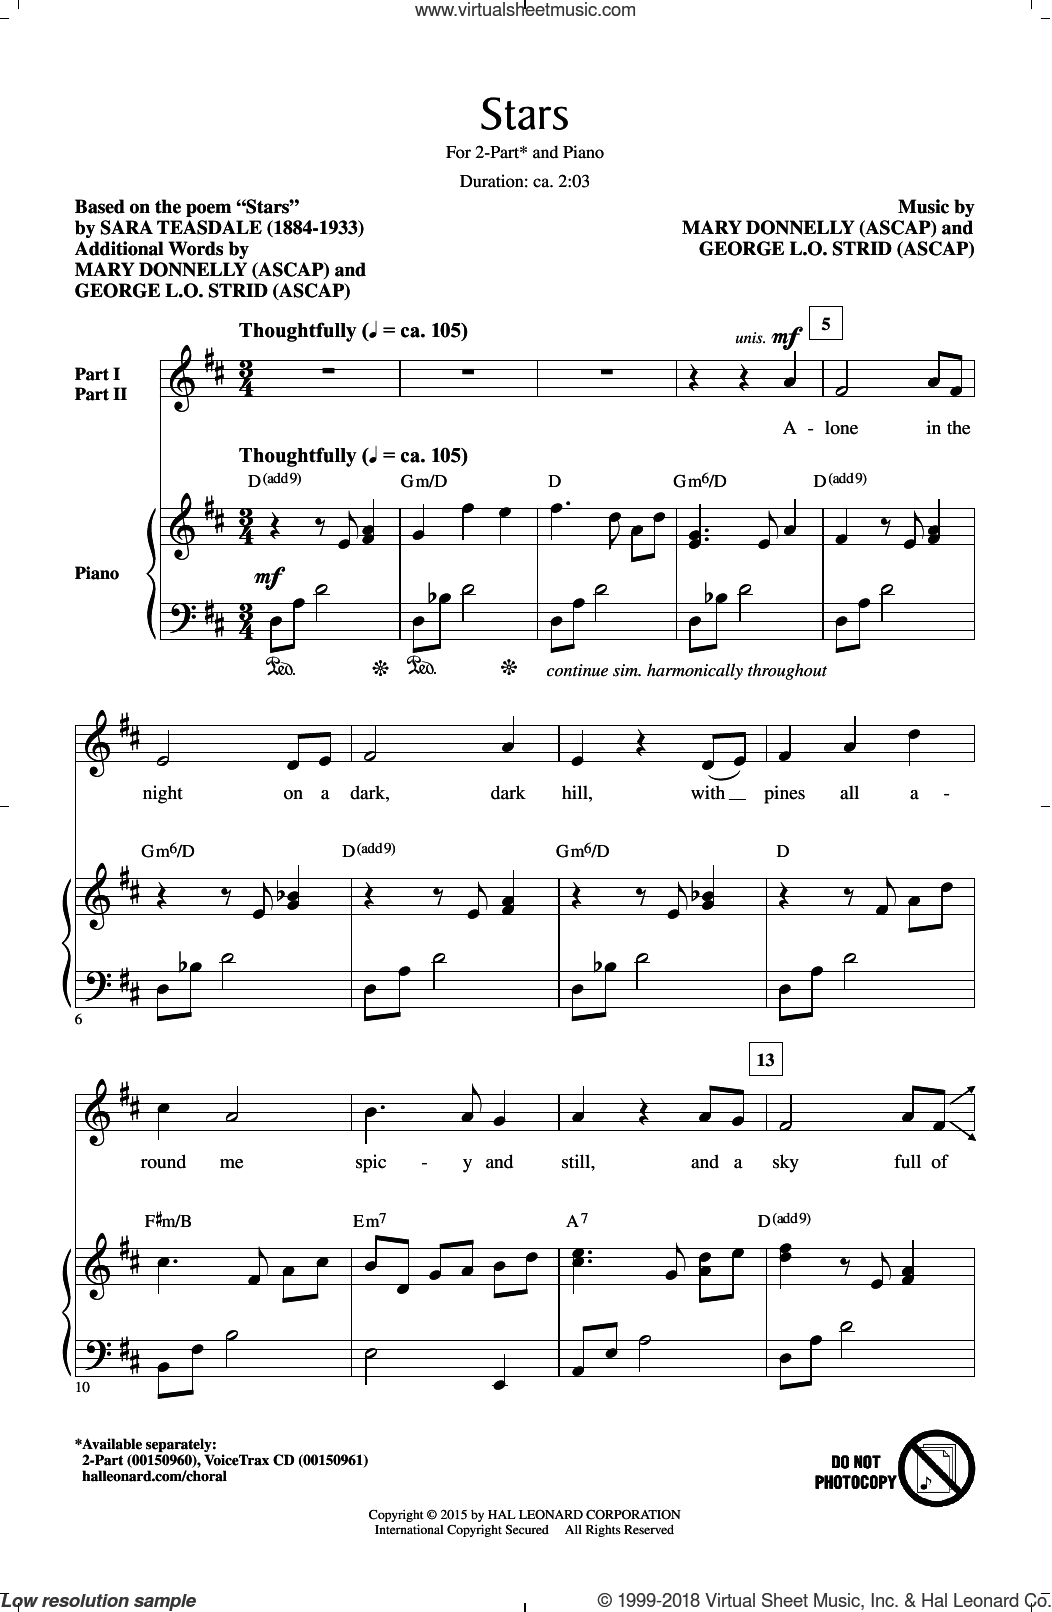 Stars sheet music for choir (2-Part) by George L.O. Strid, Mary Donnelly and Sara Teasdale, intermediate duet